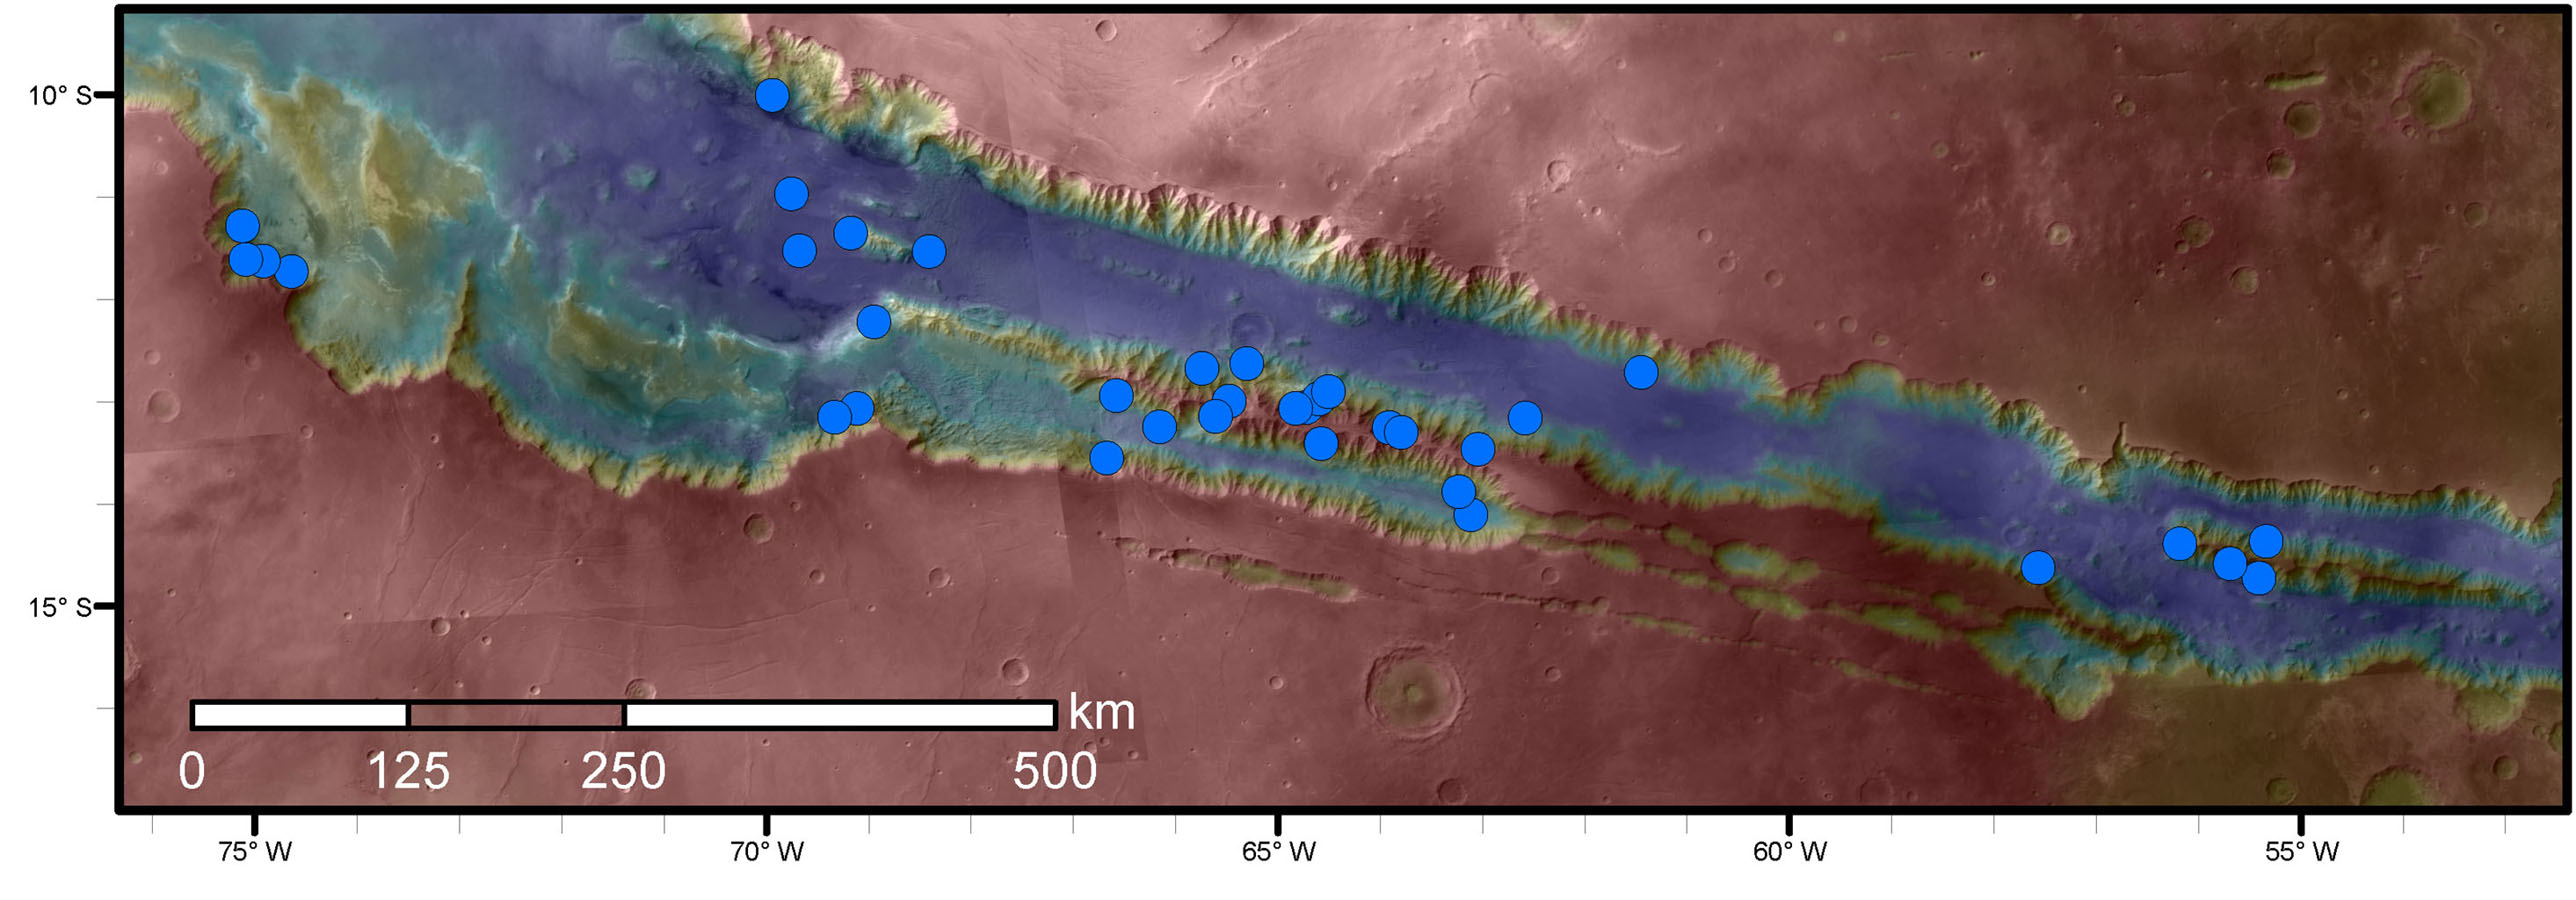 Blue dots on this map indicate sites of recurring slope lineae (RSL) in part of the Valles Marineris canyon network on Mars. RSL are seasonal dark streaks regarded as the strongest evidence for the possibility of liquid water on the surface of modern Mars. The area mapped here has the highest density of known RSL on the Red Planet.